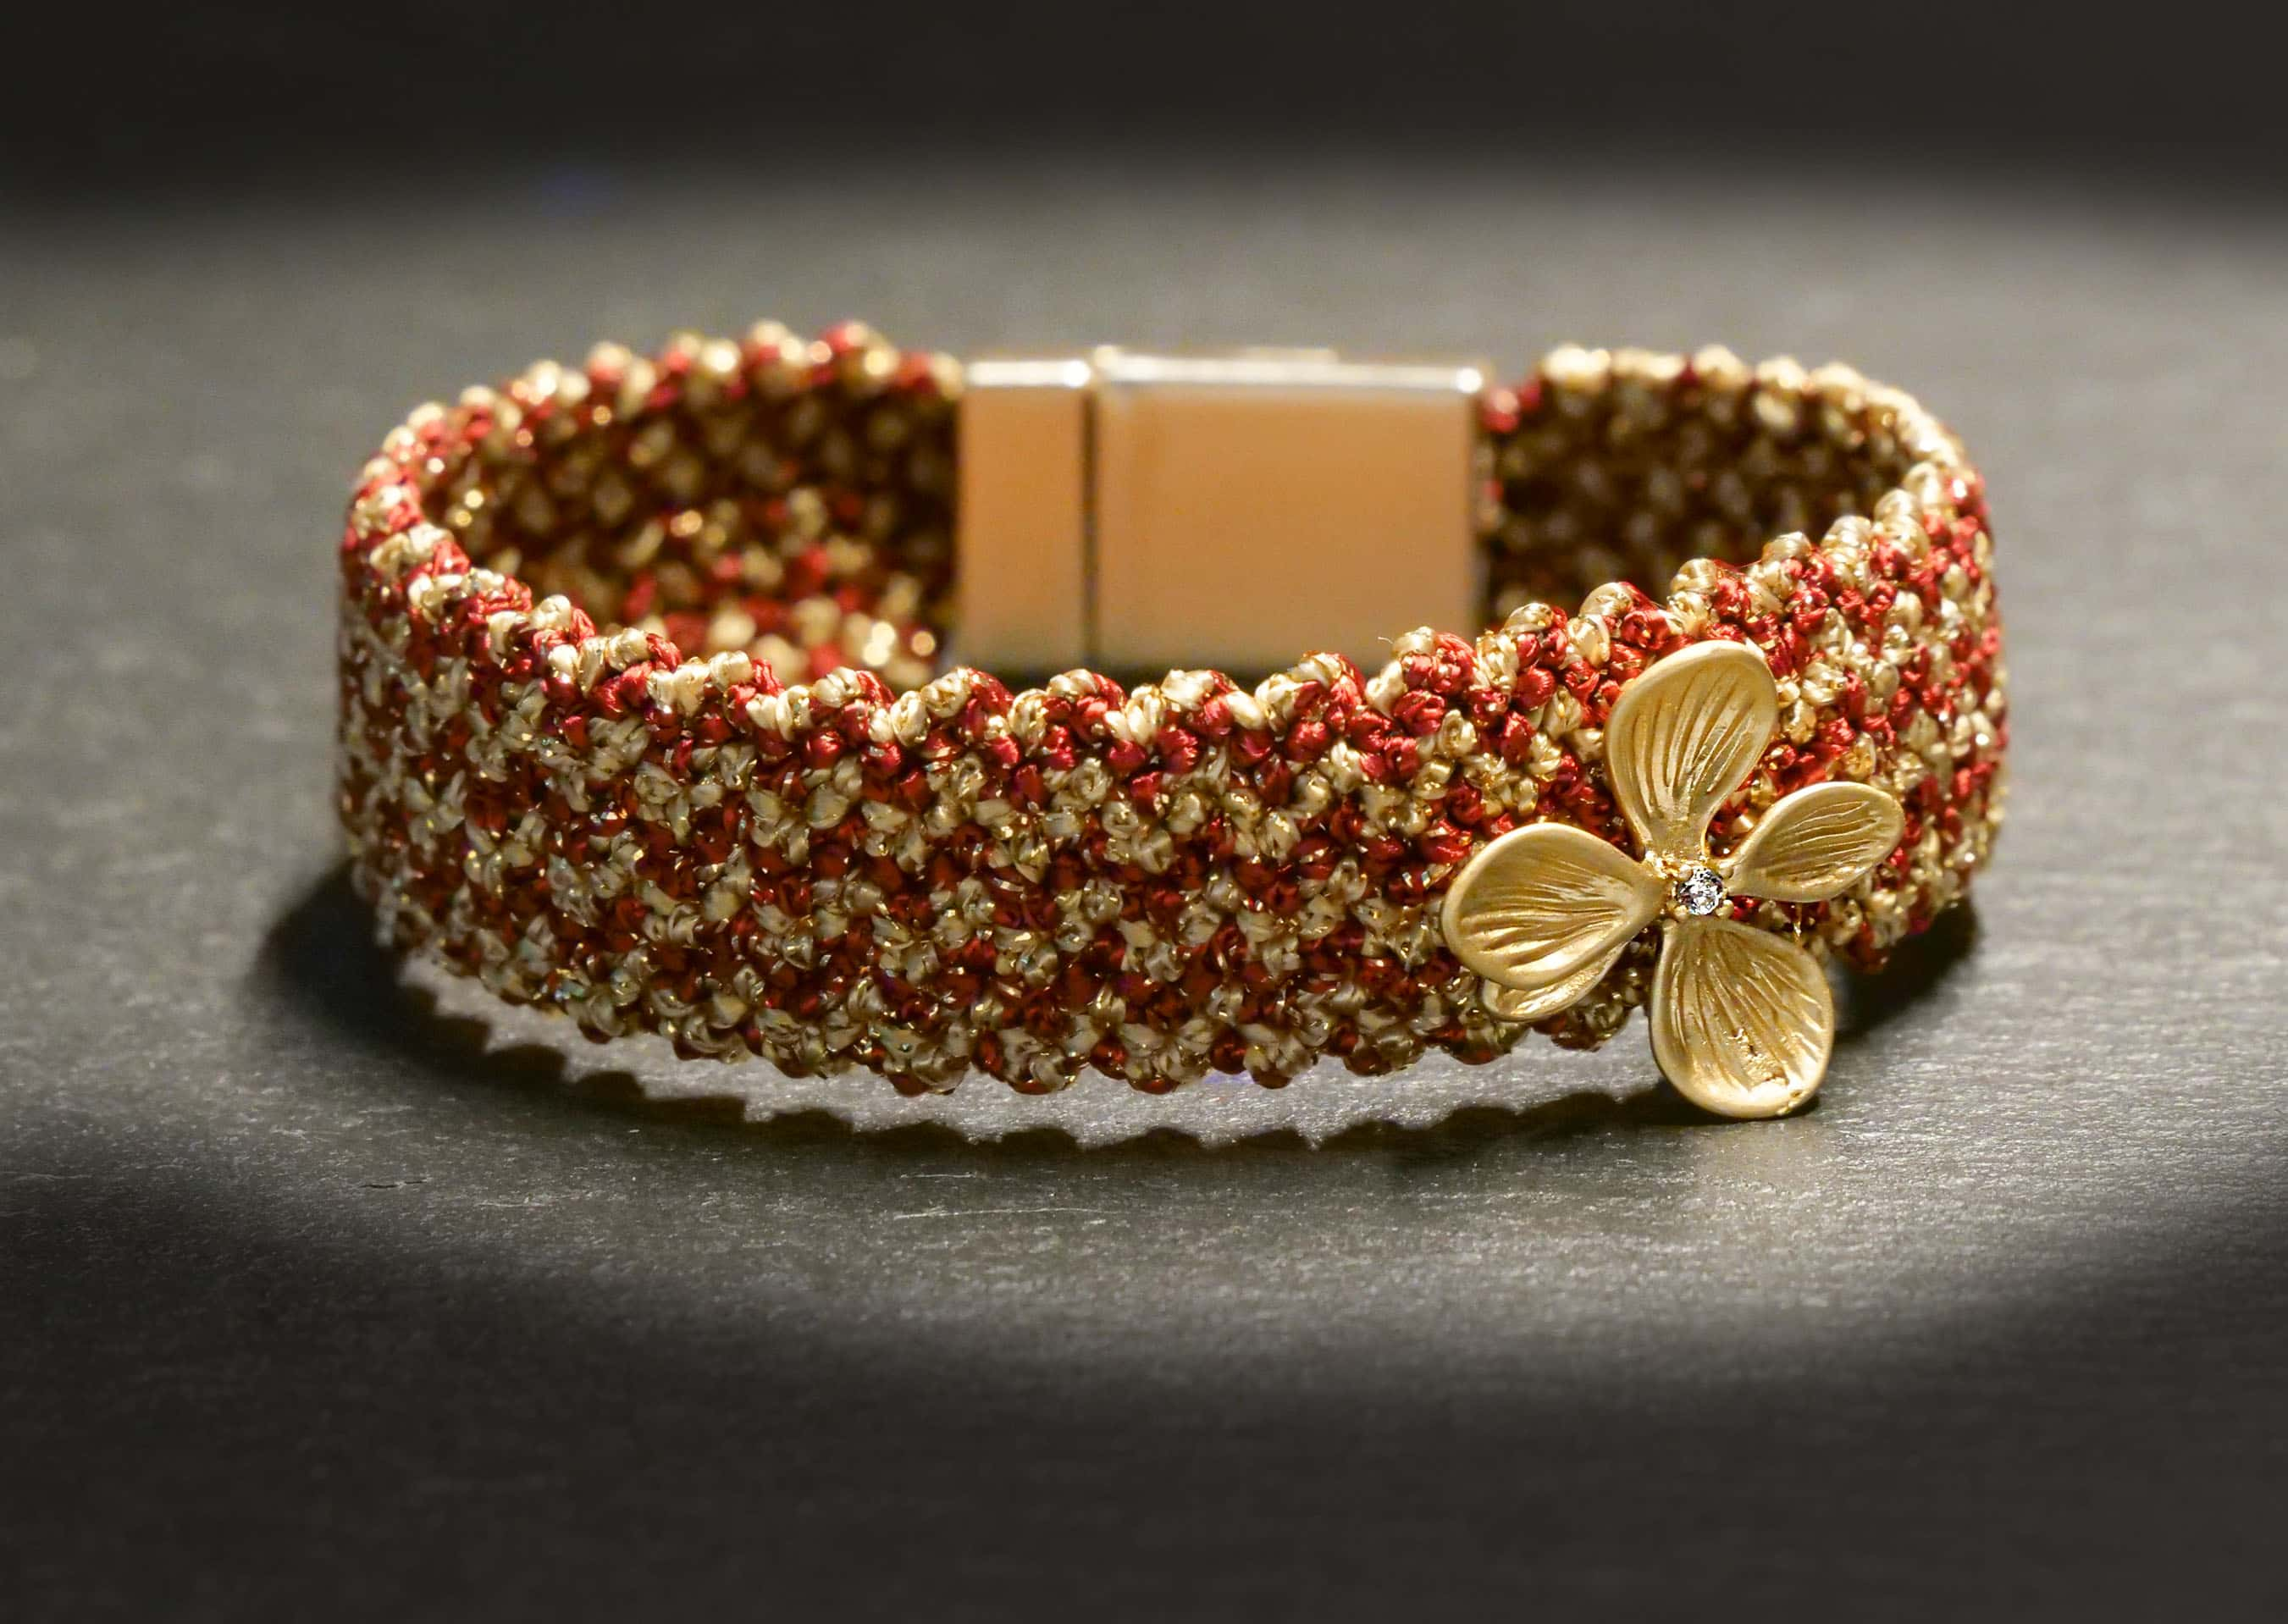 woven bracelet with flower pendant in bordeaux